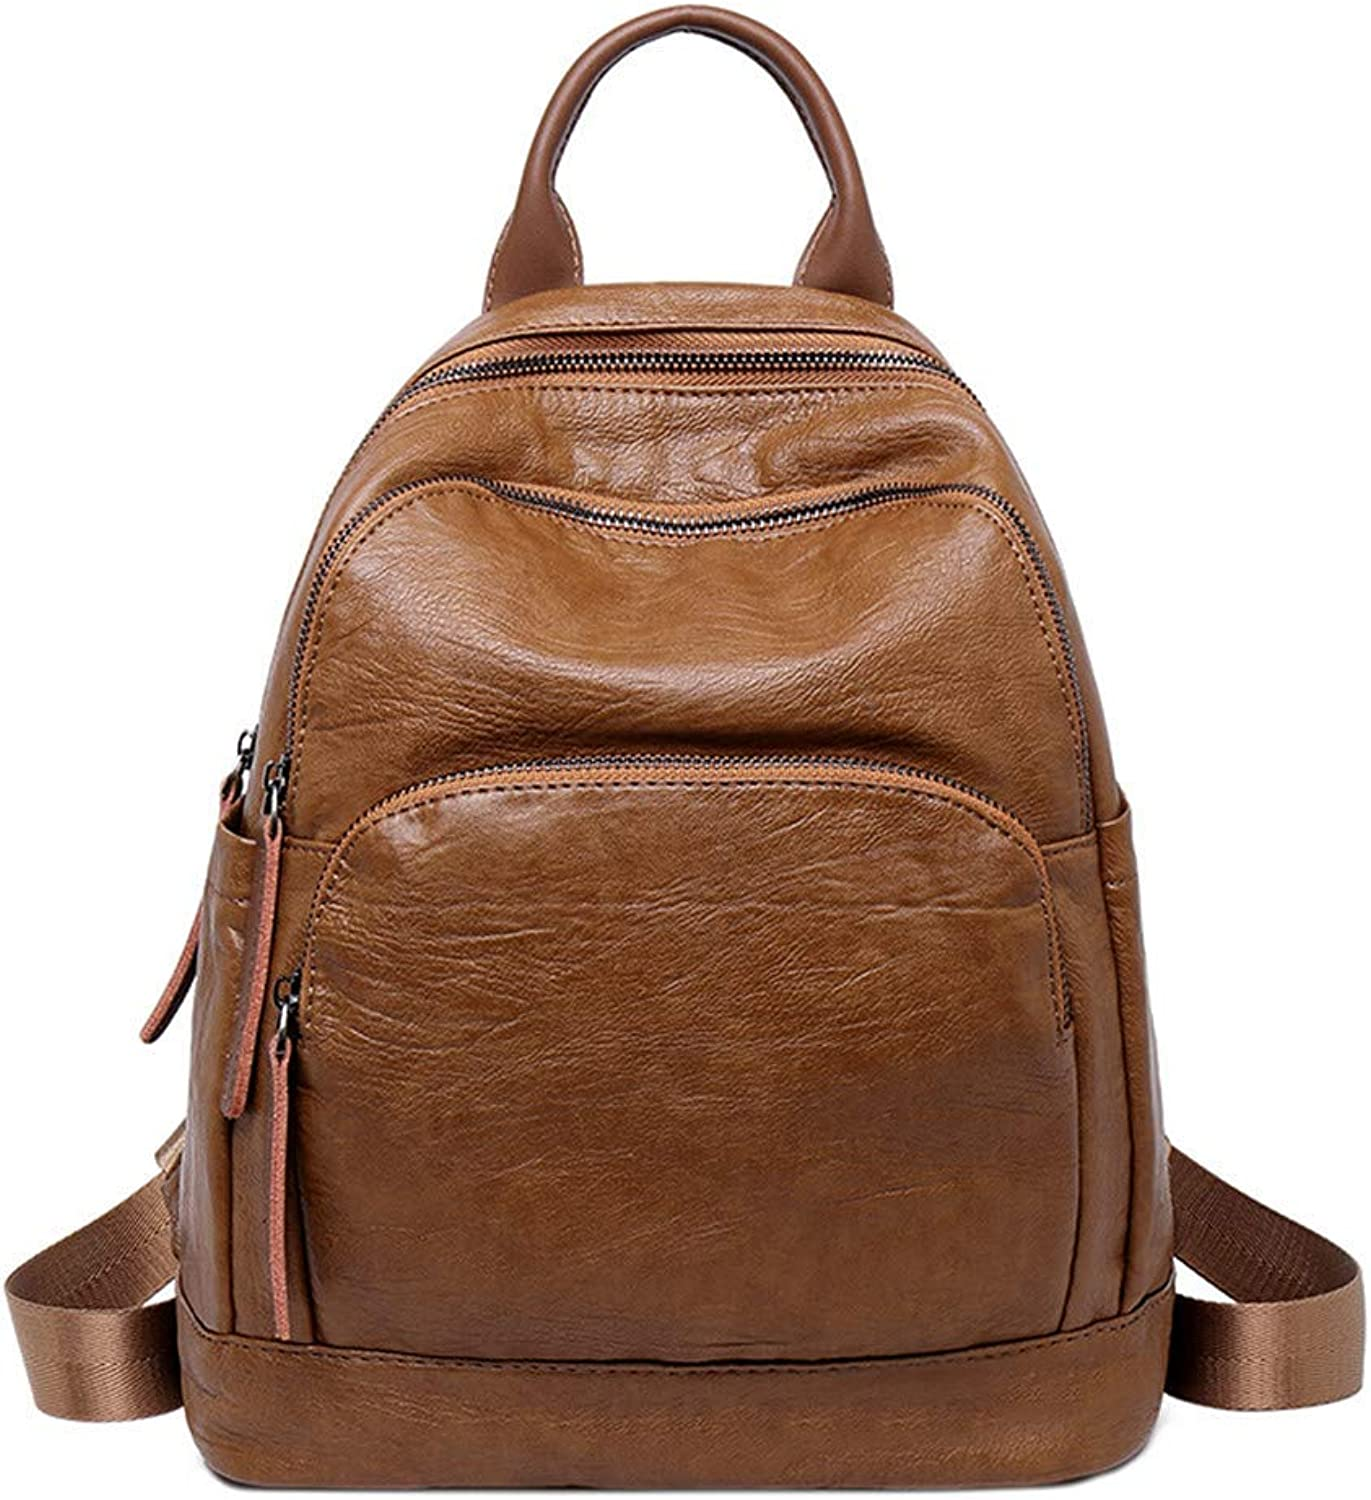 Climb Backpack Backpack Lady Retro Leather Fashion Wild Casual Bag College Wind Bag Travel Backpack 27×13×32CM (color   Brown) (color   Brown)